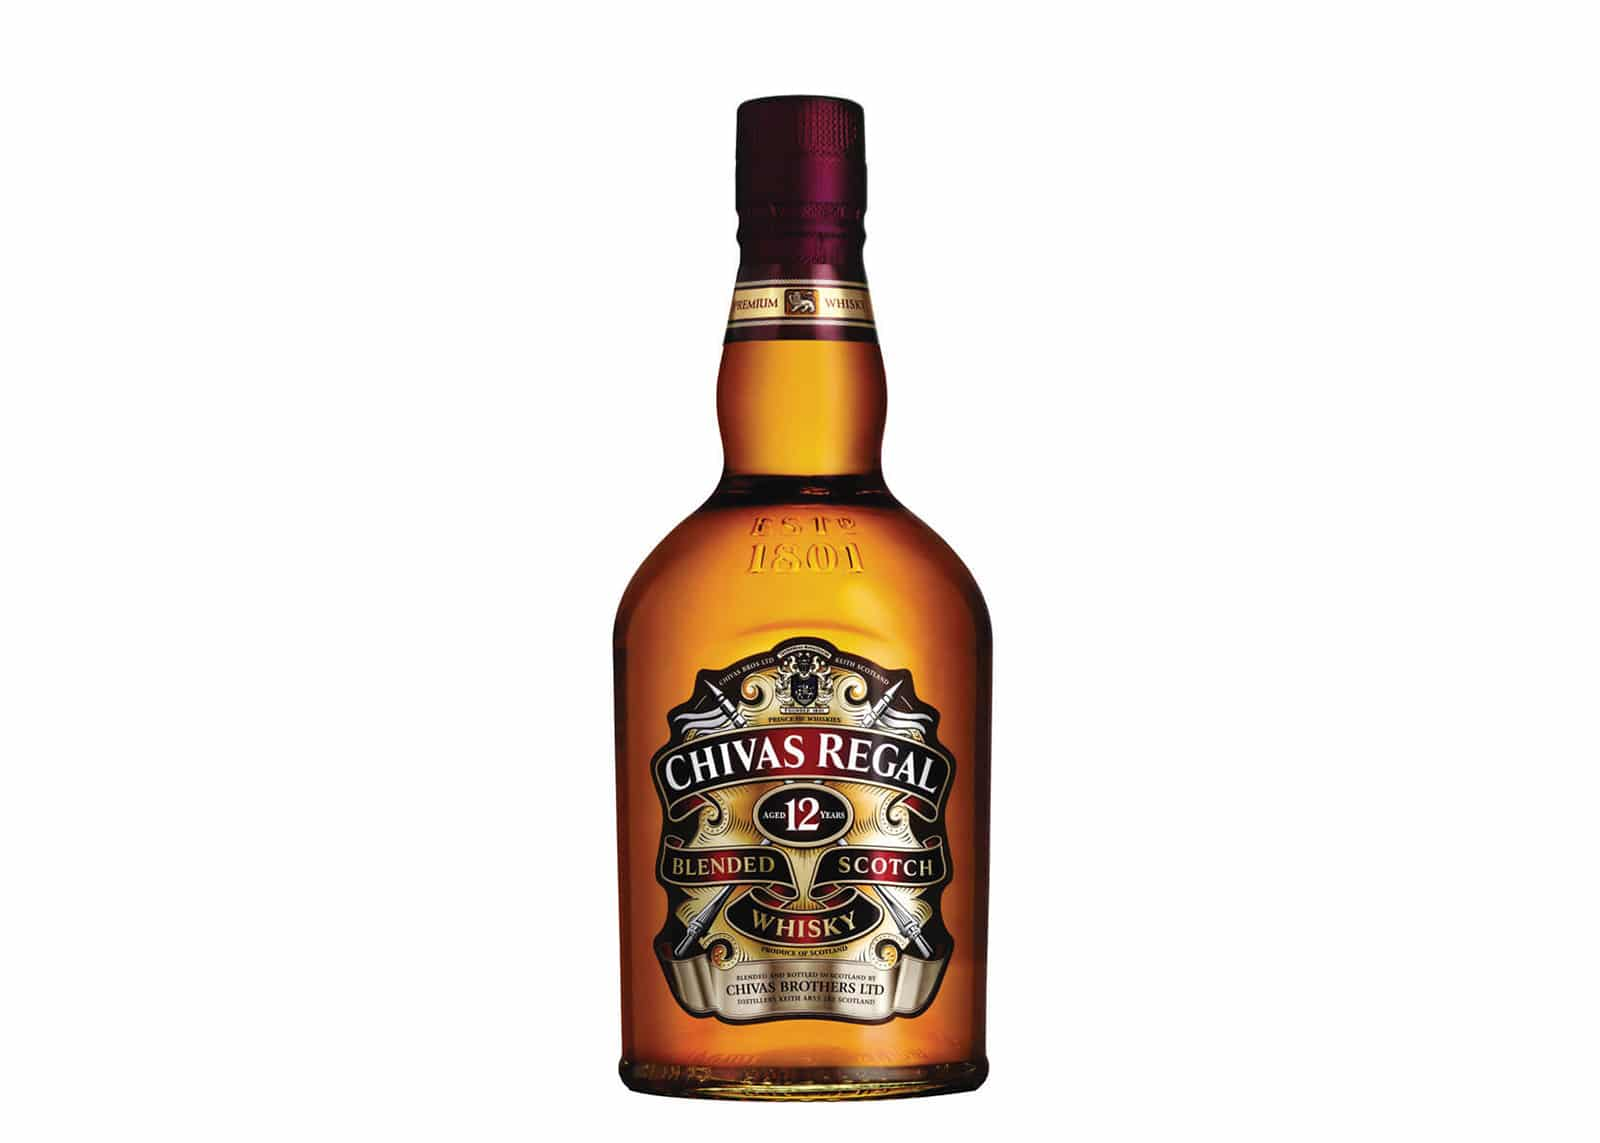 Chivas-Regal-Aged 12-Years